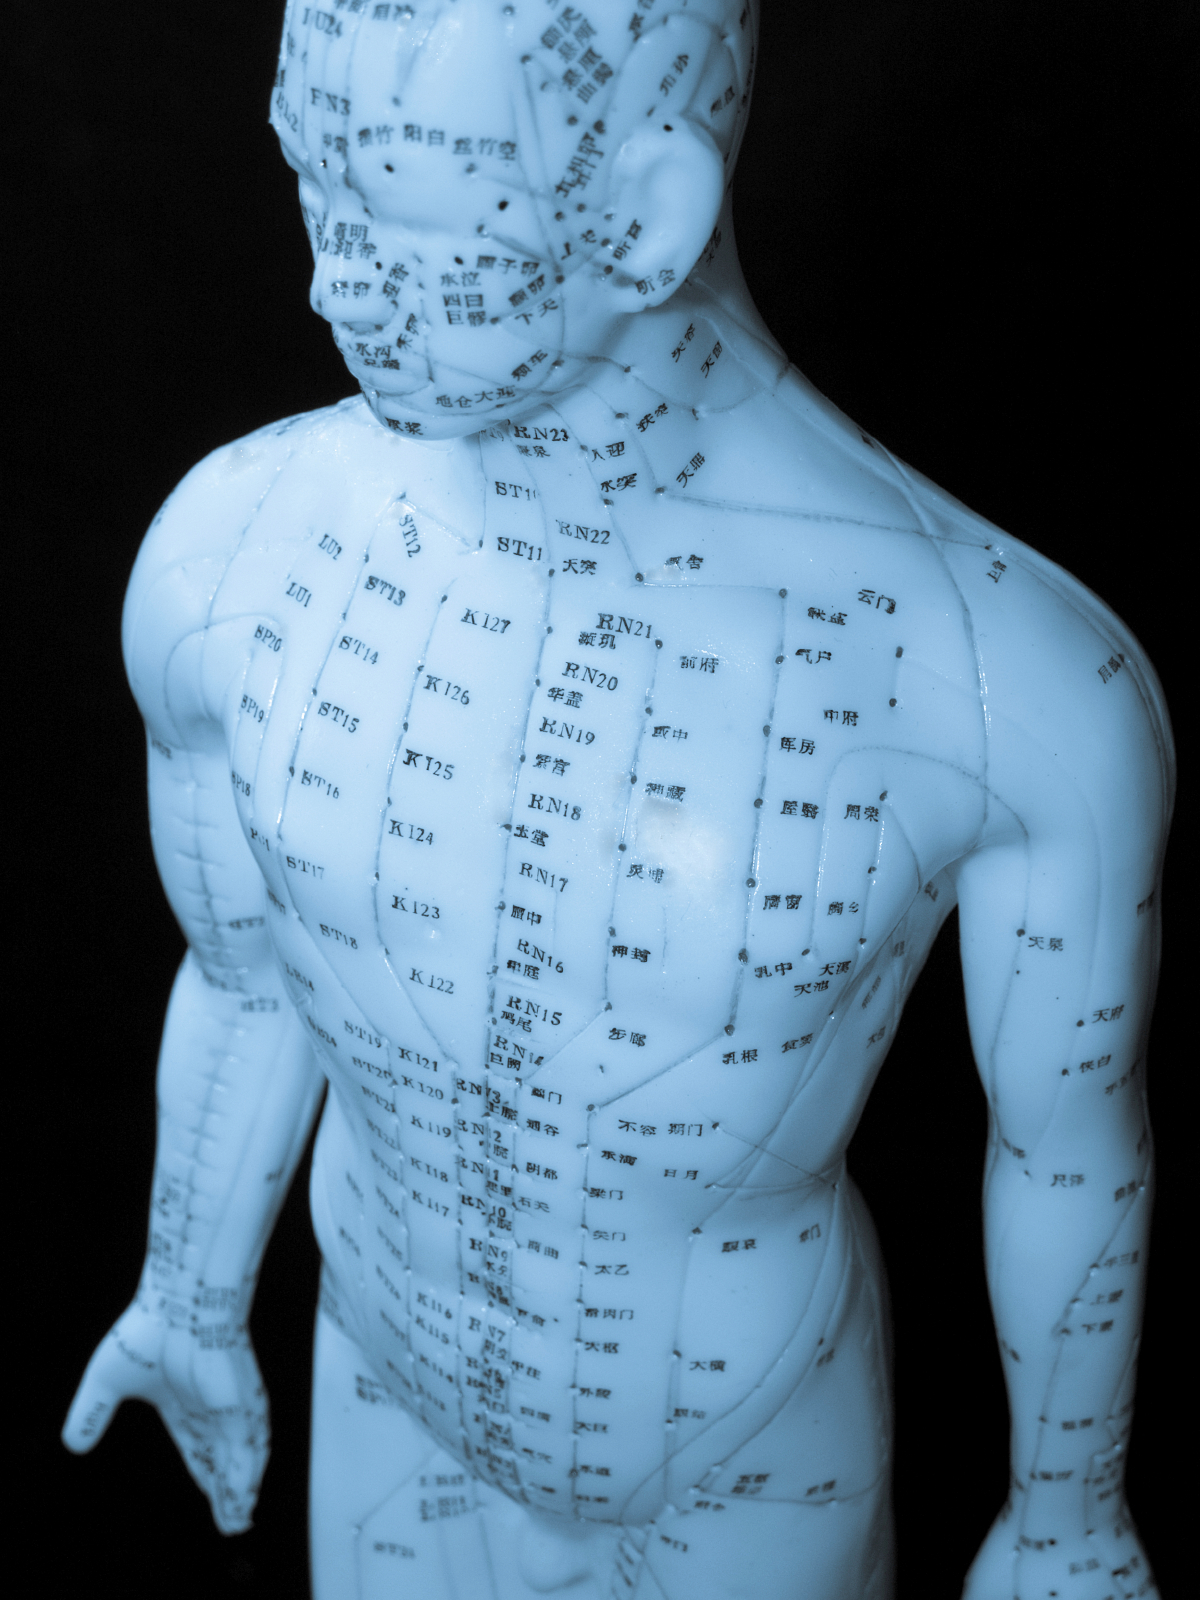 Acupuncture what are the major subjects of issue assessments